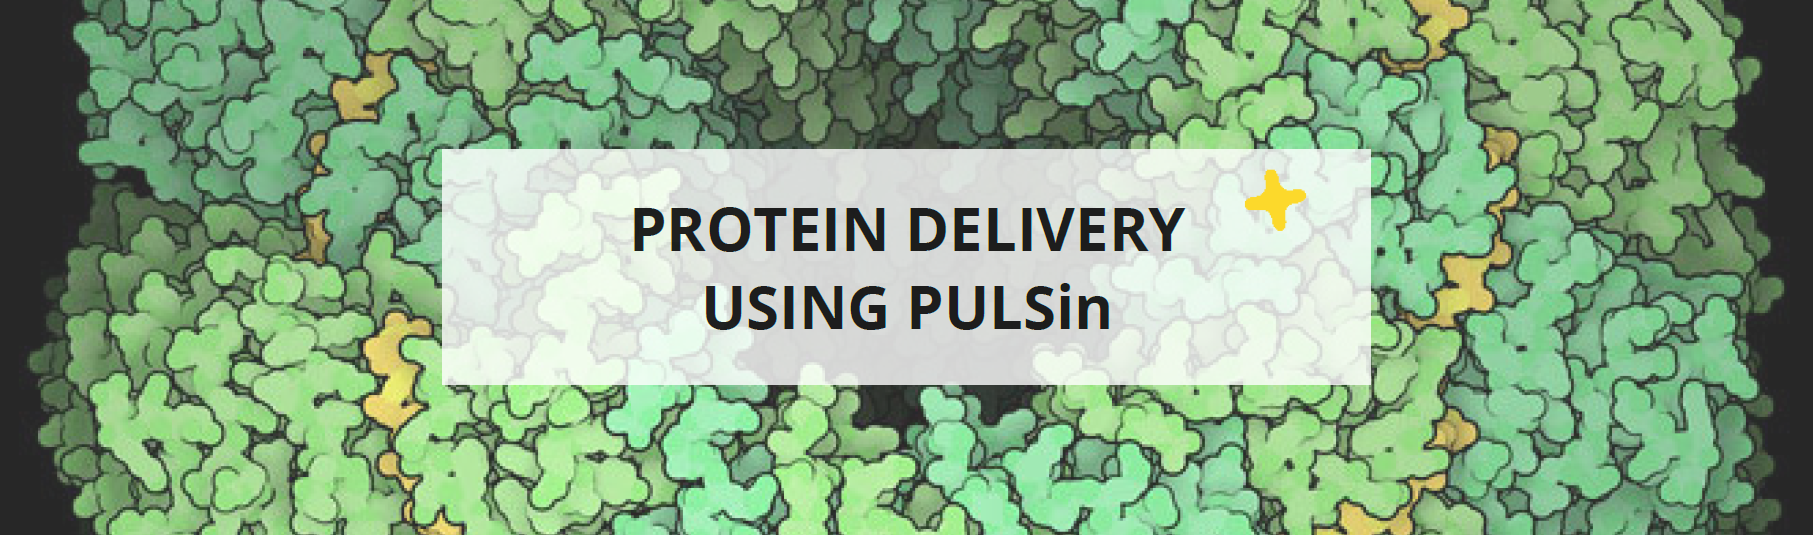 Protein delivery using PULSin